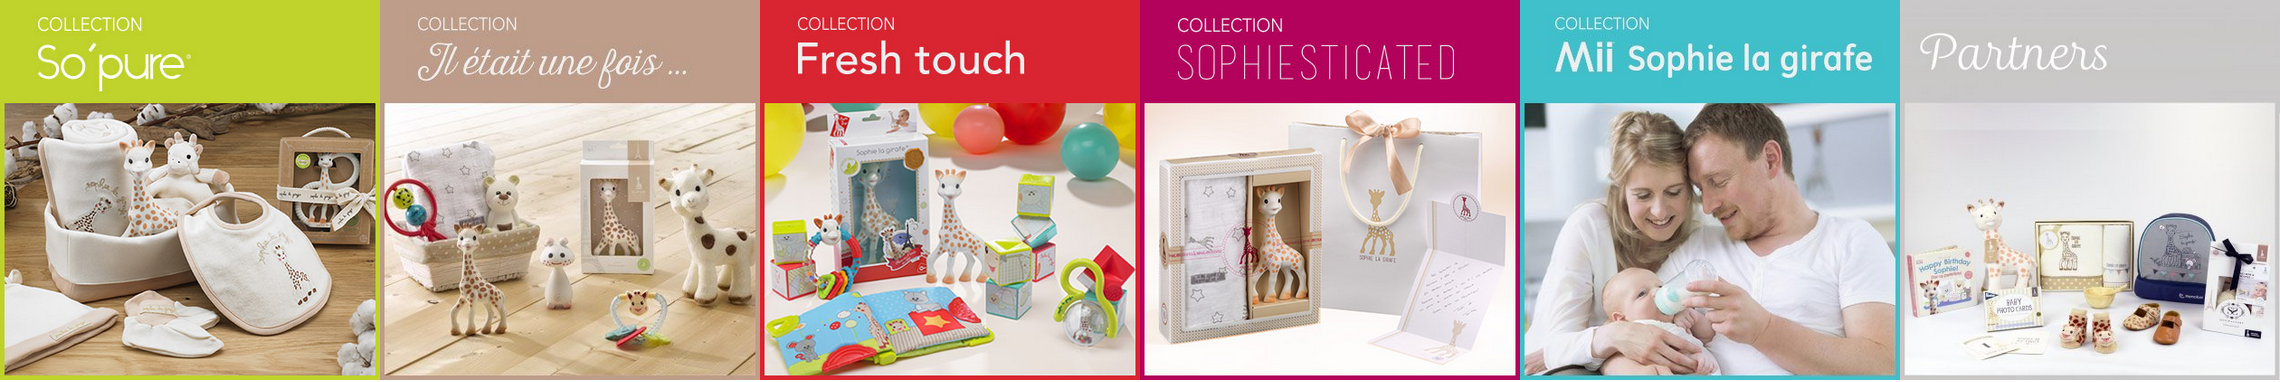 Sophie la girafe collecties